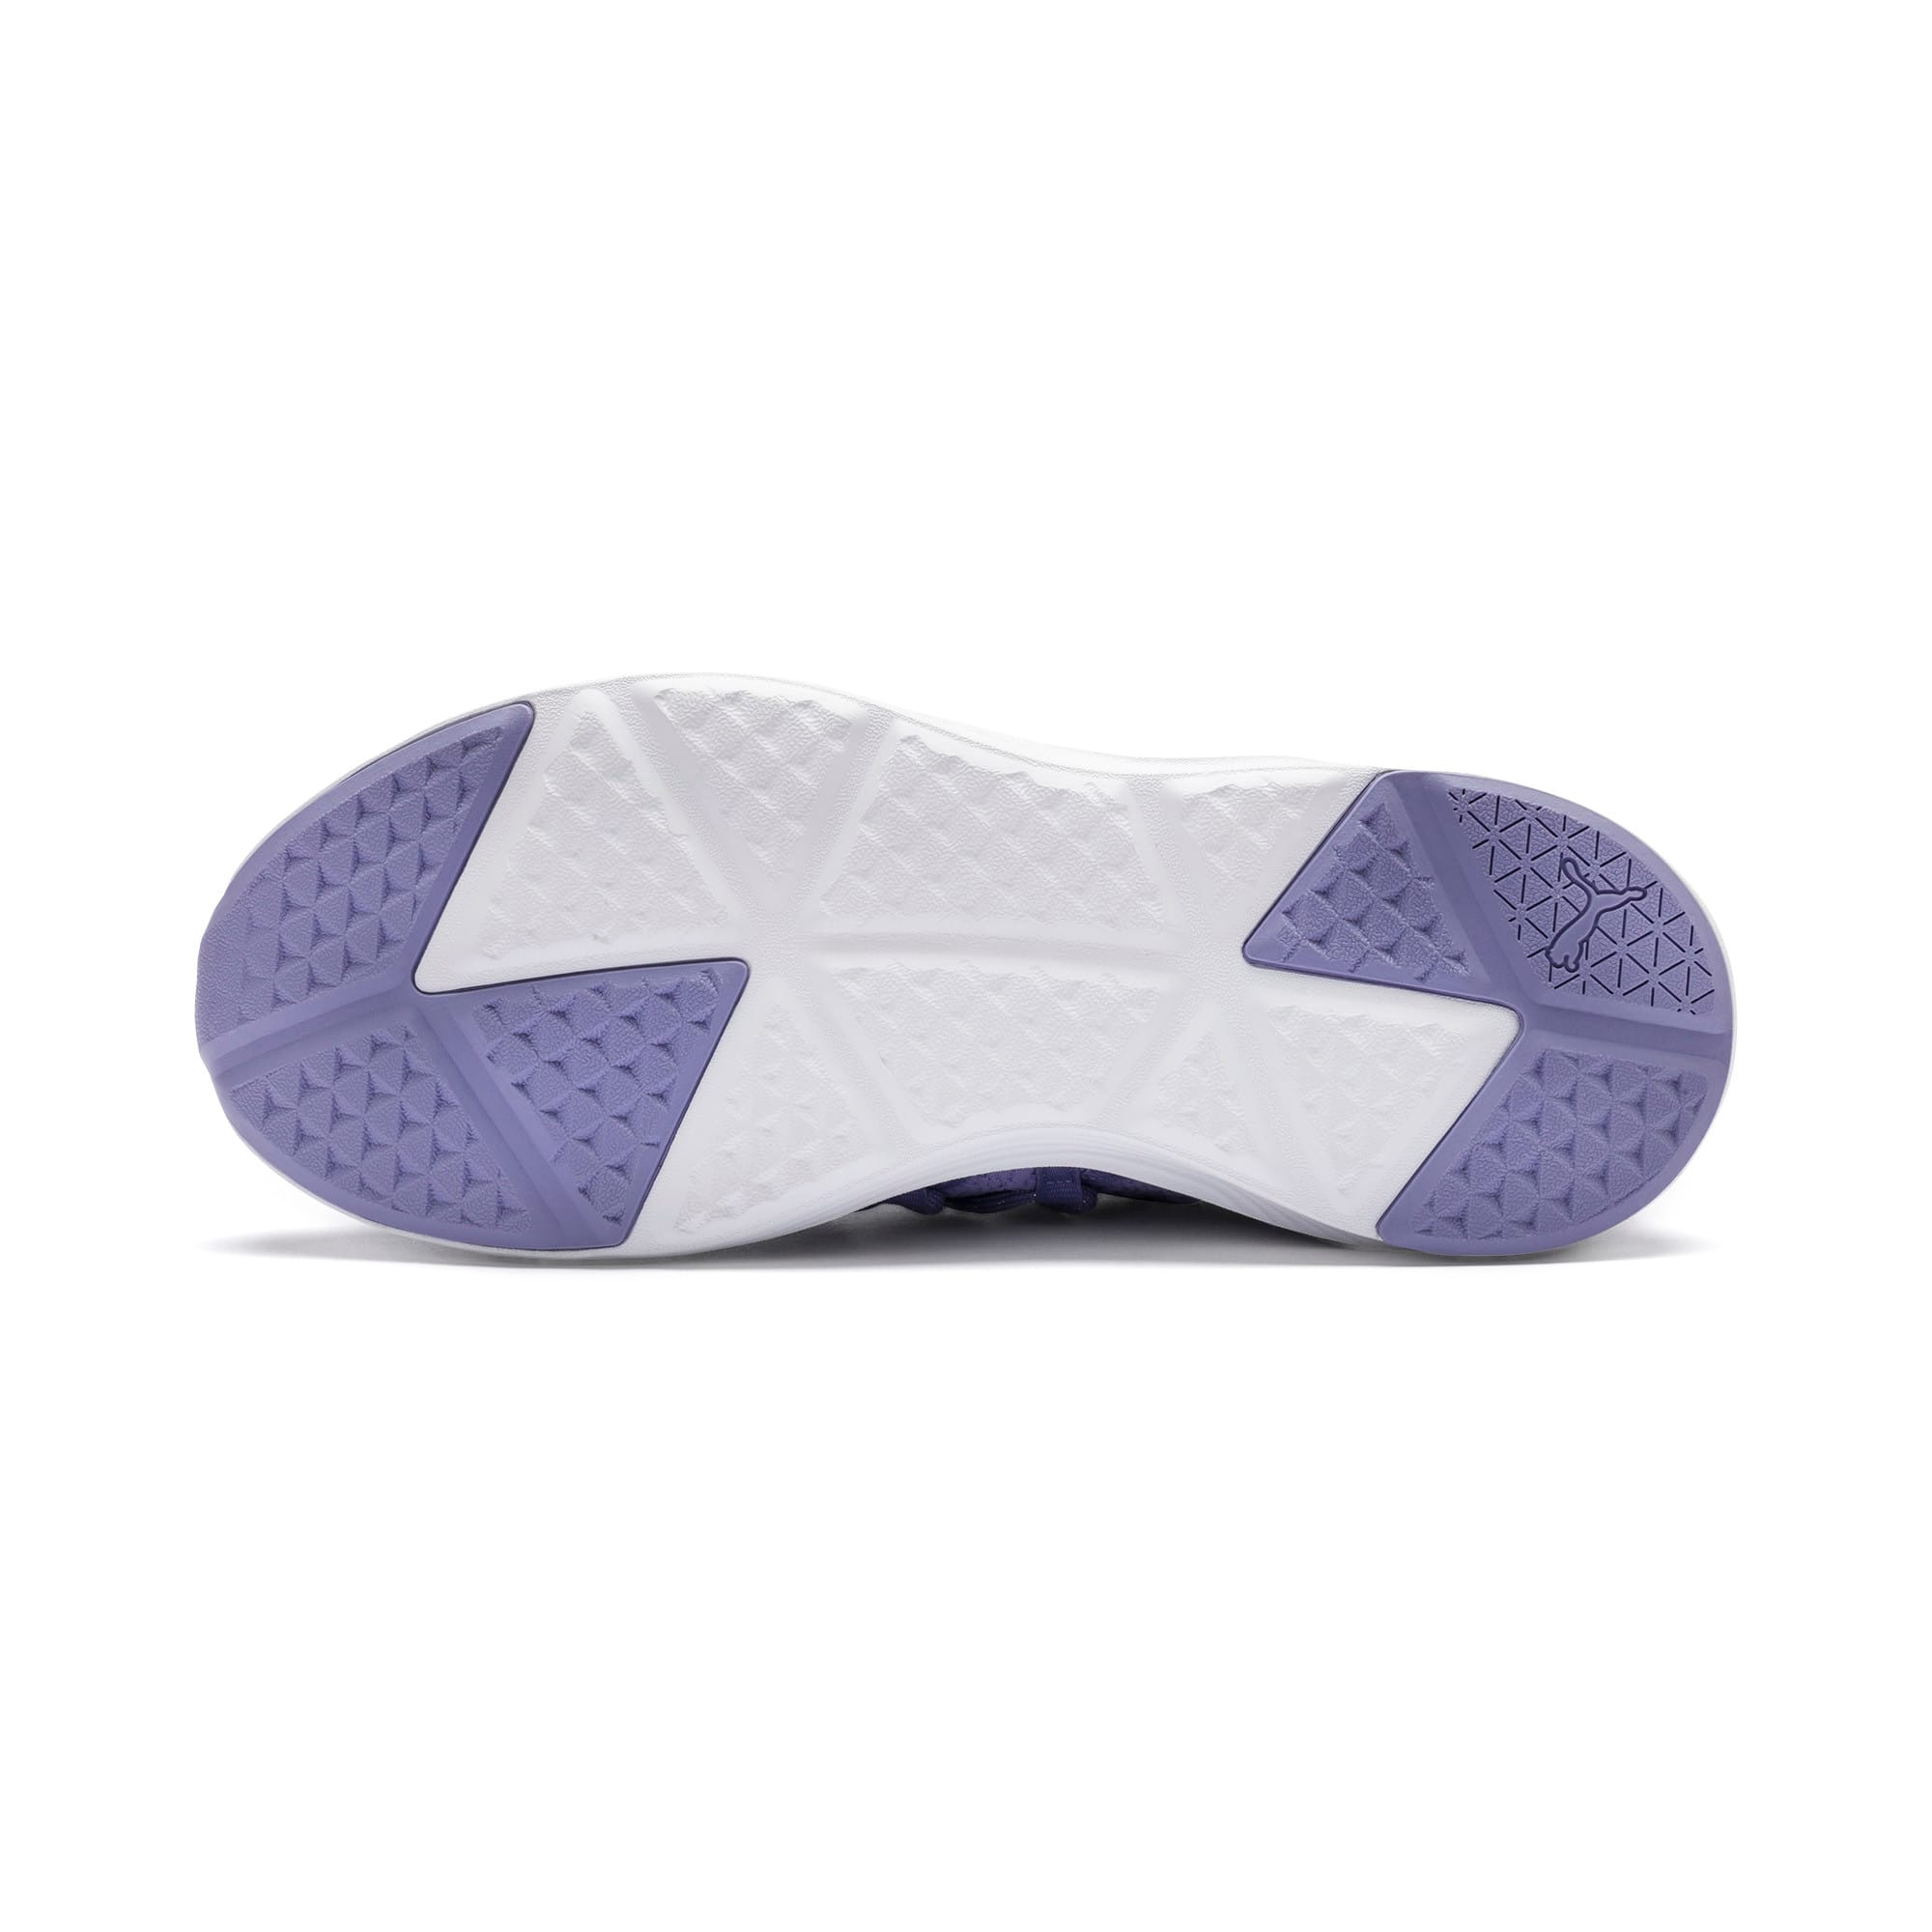 Thumbnail 3 of Prowl Alt Metallic Women's Training Shoes, Sweet Lavender-Puma White, medium